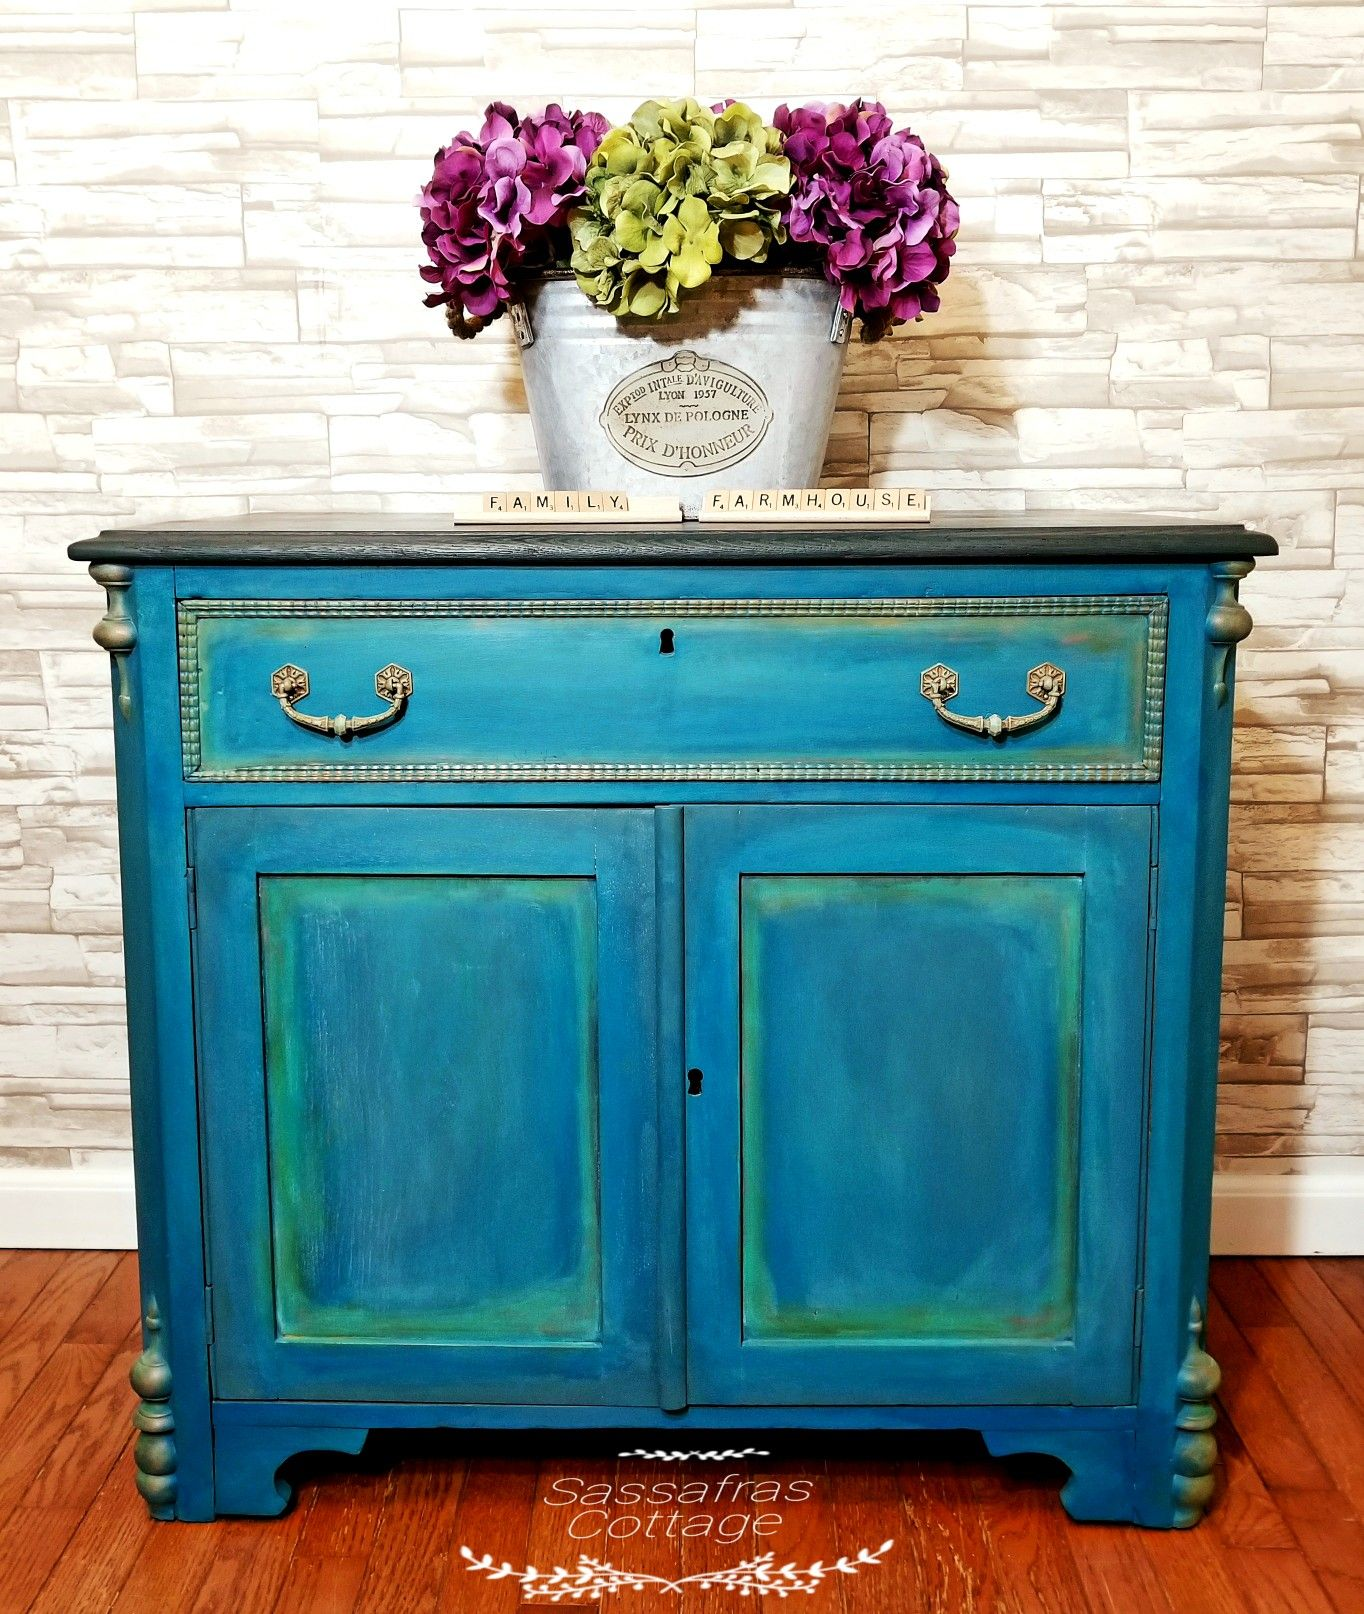 Wise Owl Paint Nebula Turquoise Blended Gilderspaste Primitive Wise Owl Paint Nebula Painting Turquoise Painted Furniture